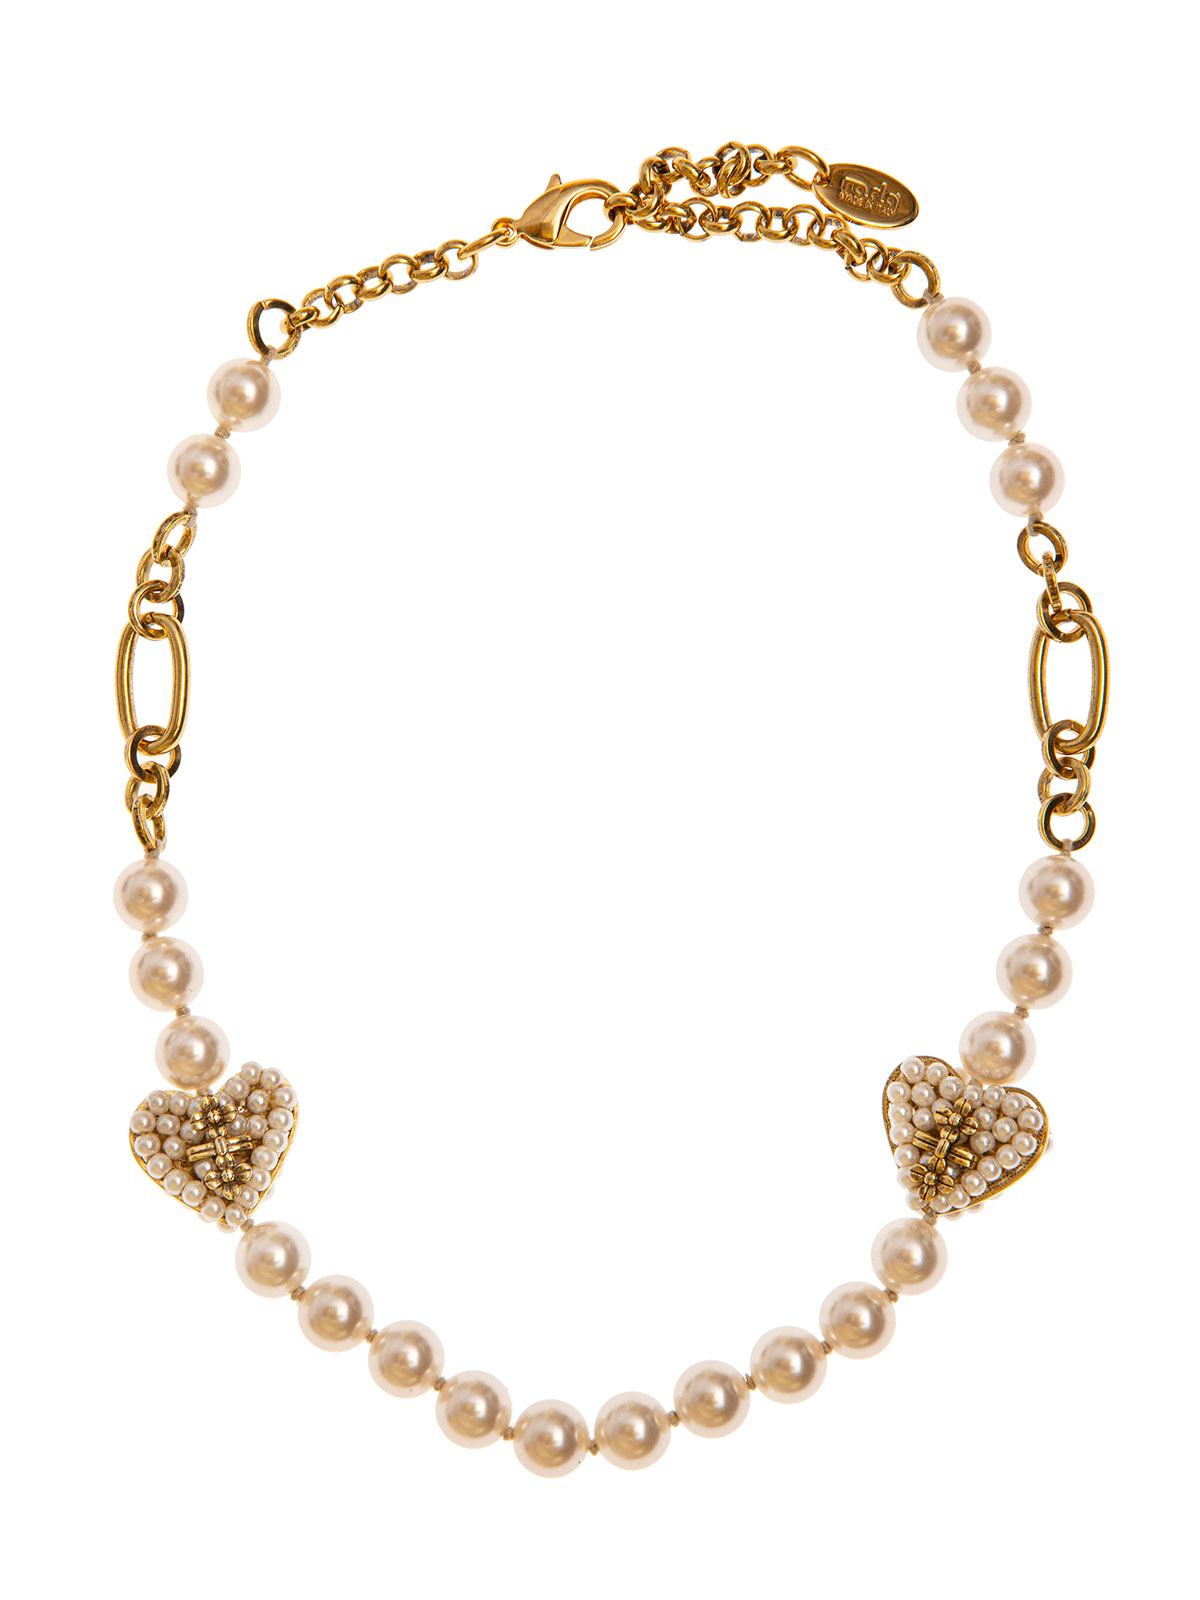 Pearl and chain necklace embellished with beaded hearts